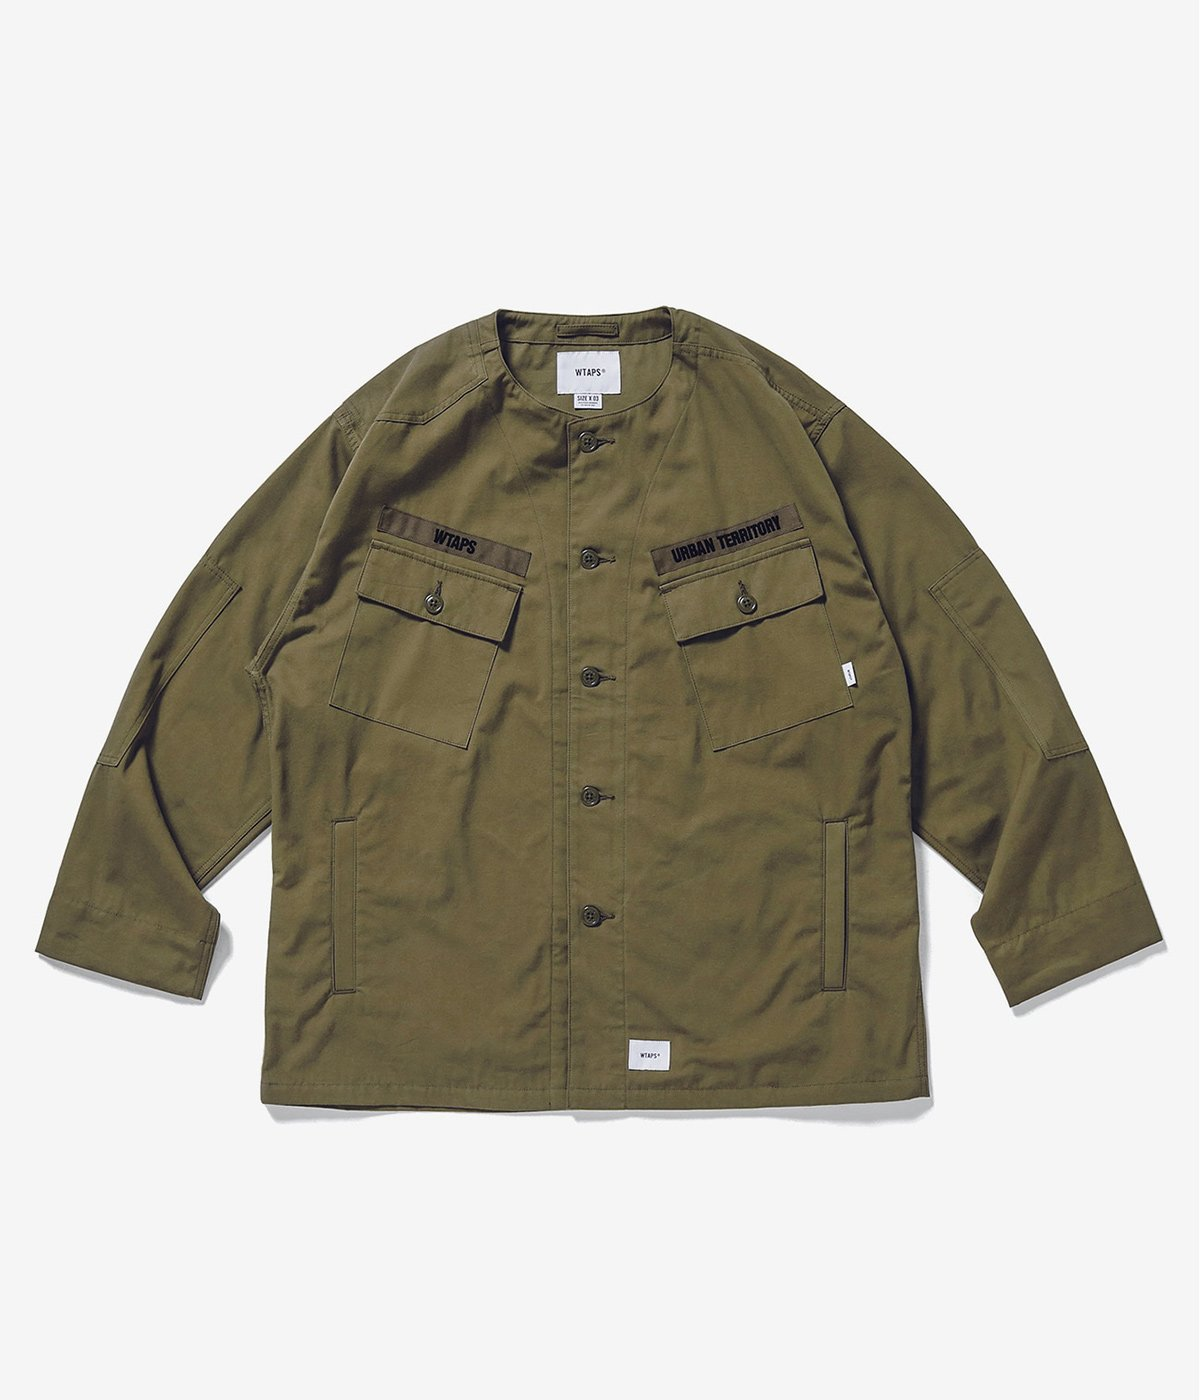 SCOUT LS / SHIRT. COTTON. WEATHER